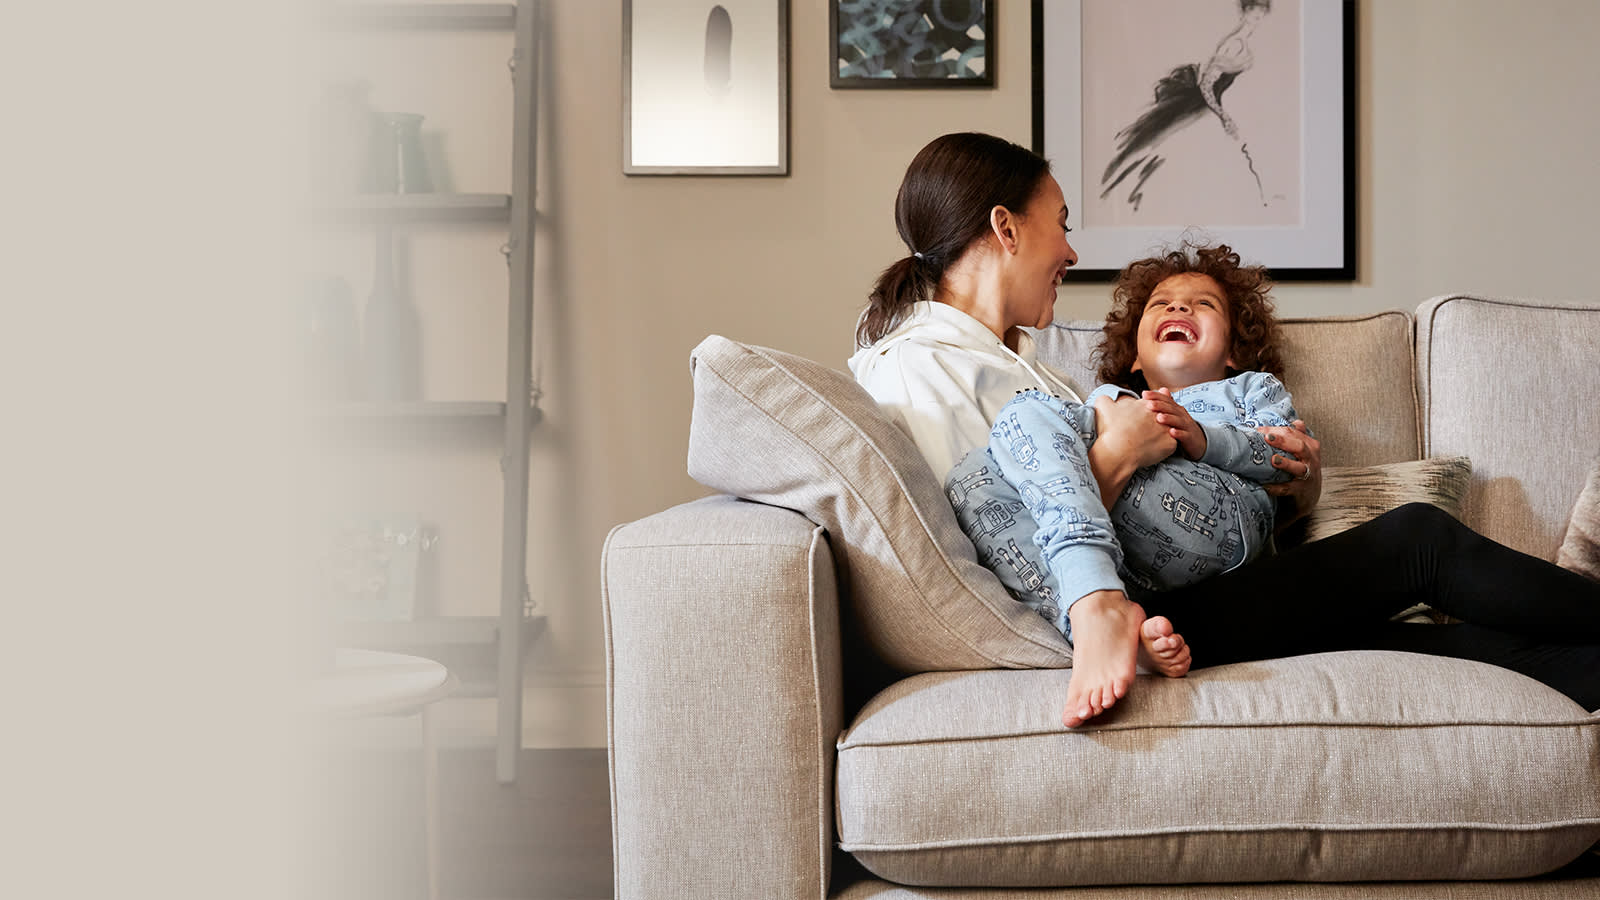 Mother and child laughing on grey fabric sofa